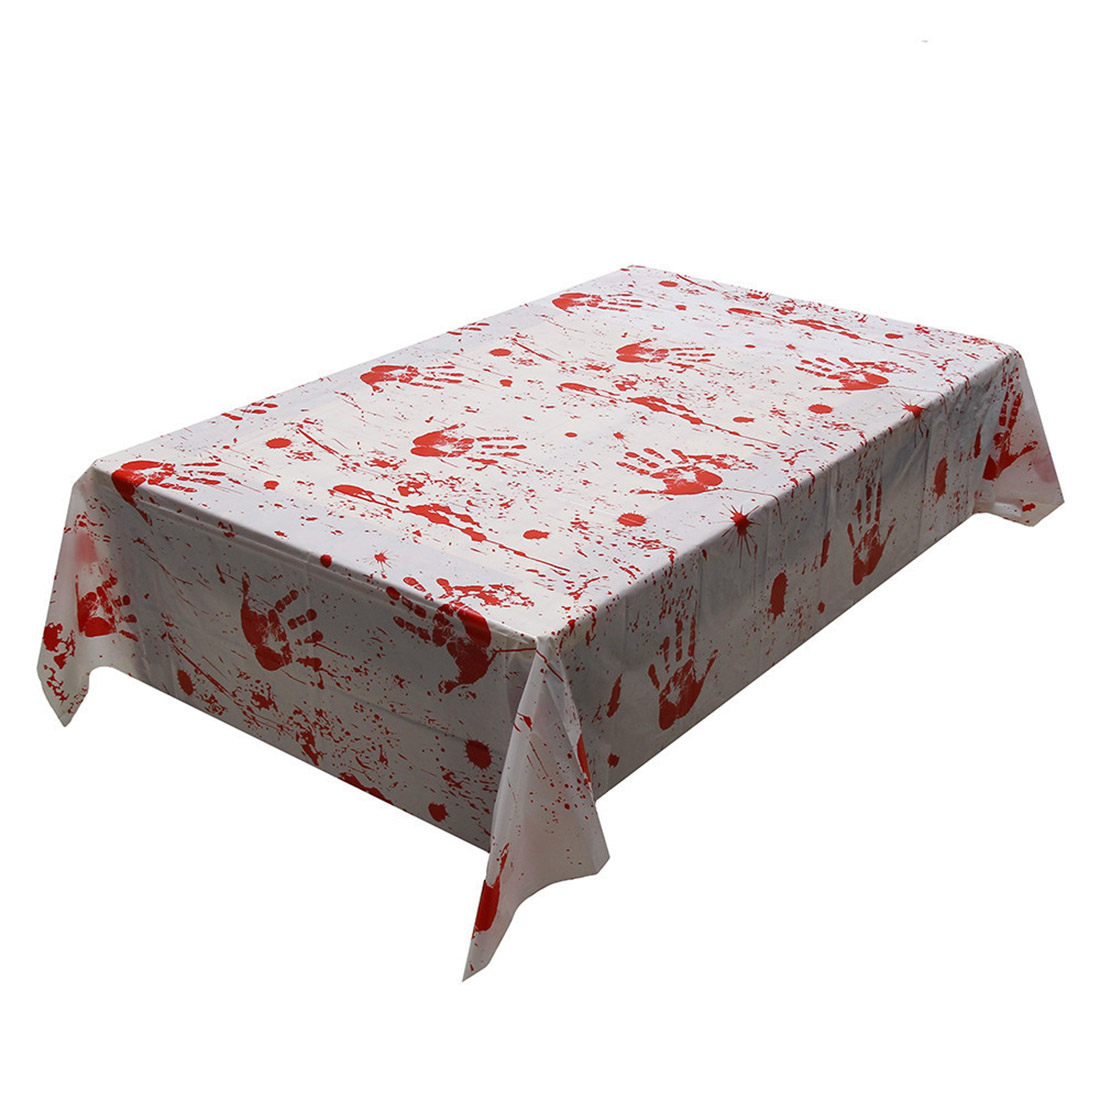 1pc Halloween Tablecloth Blood Halloween Party Hand Print Horror Table Cloth  PVC Home Tablecloth Home Decorative Table Cloth